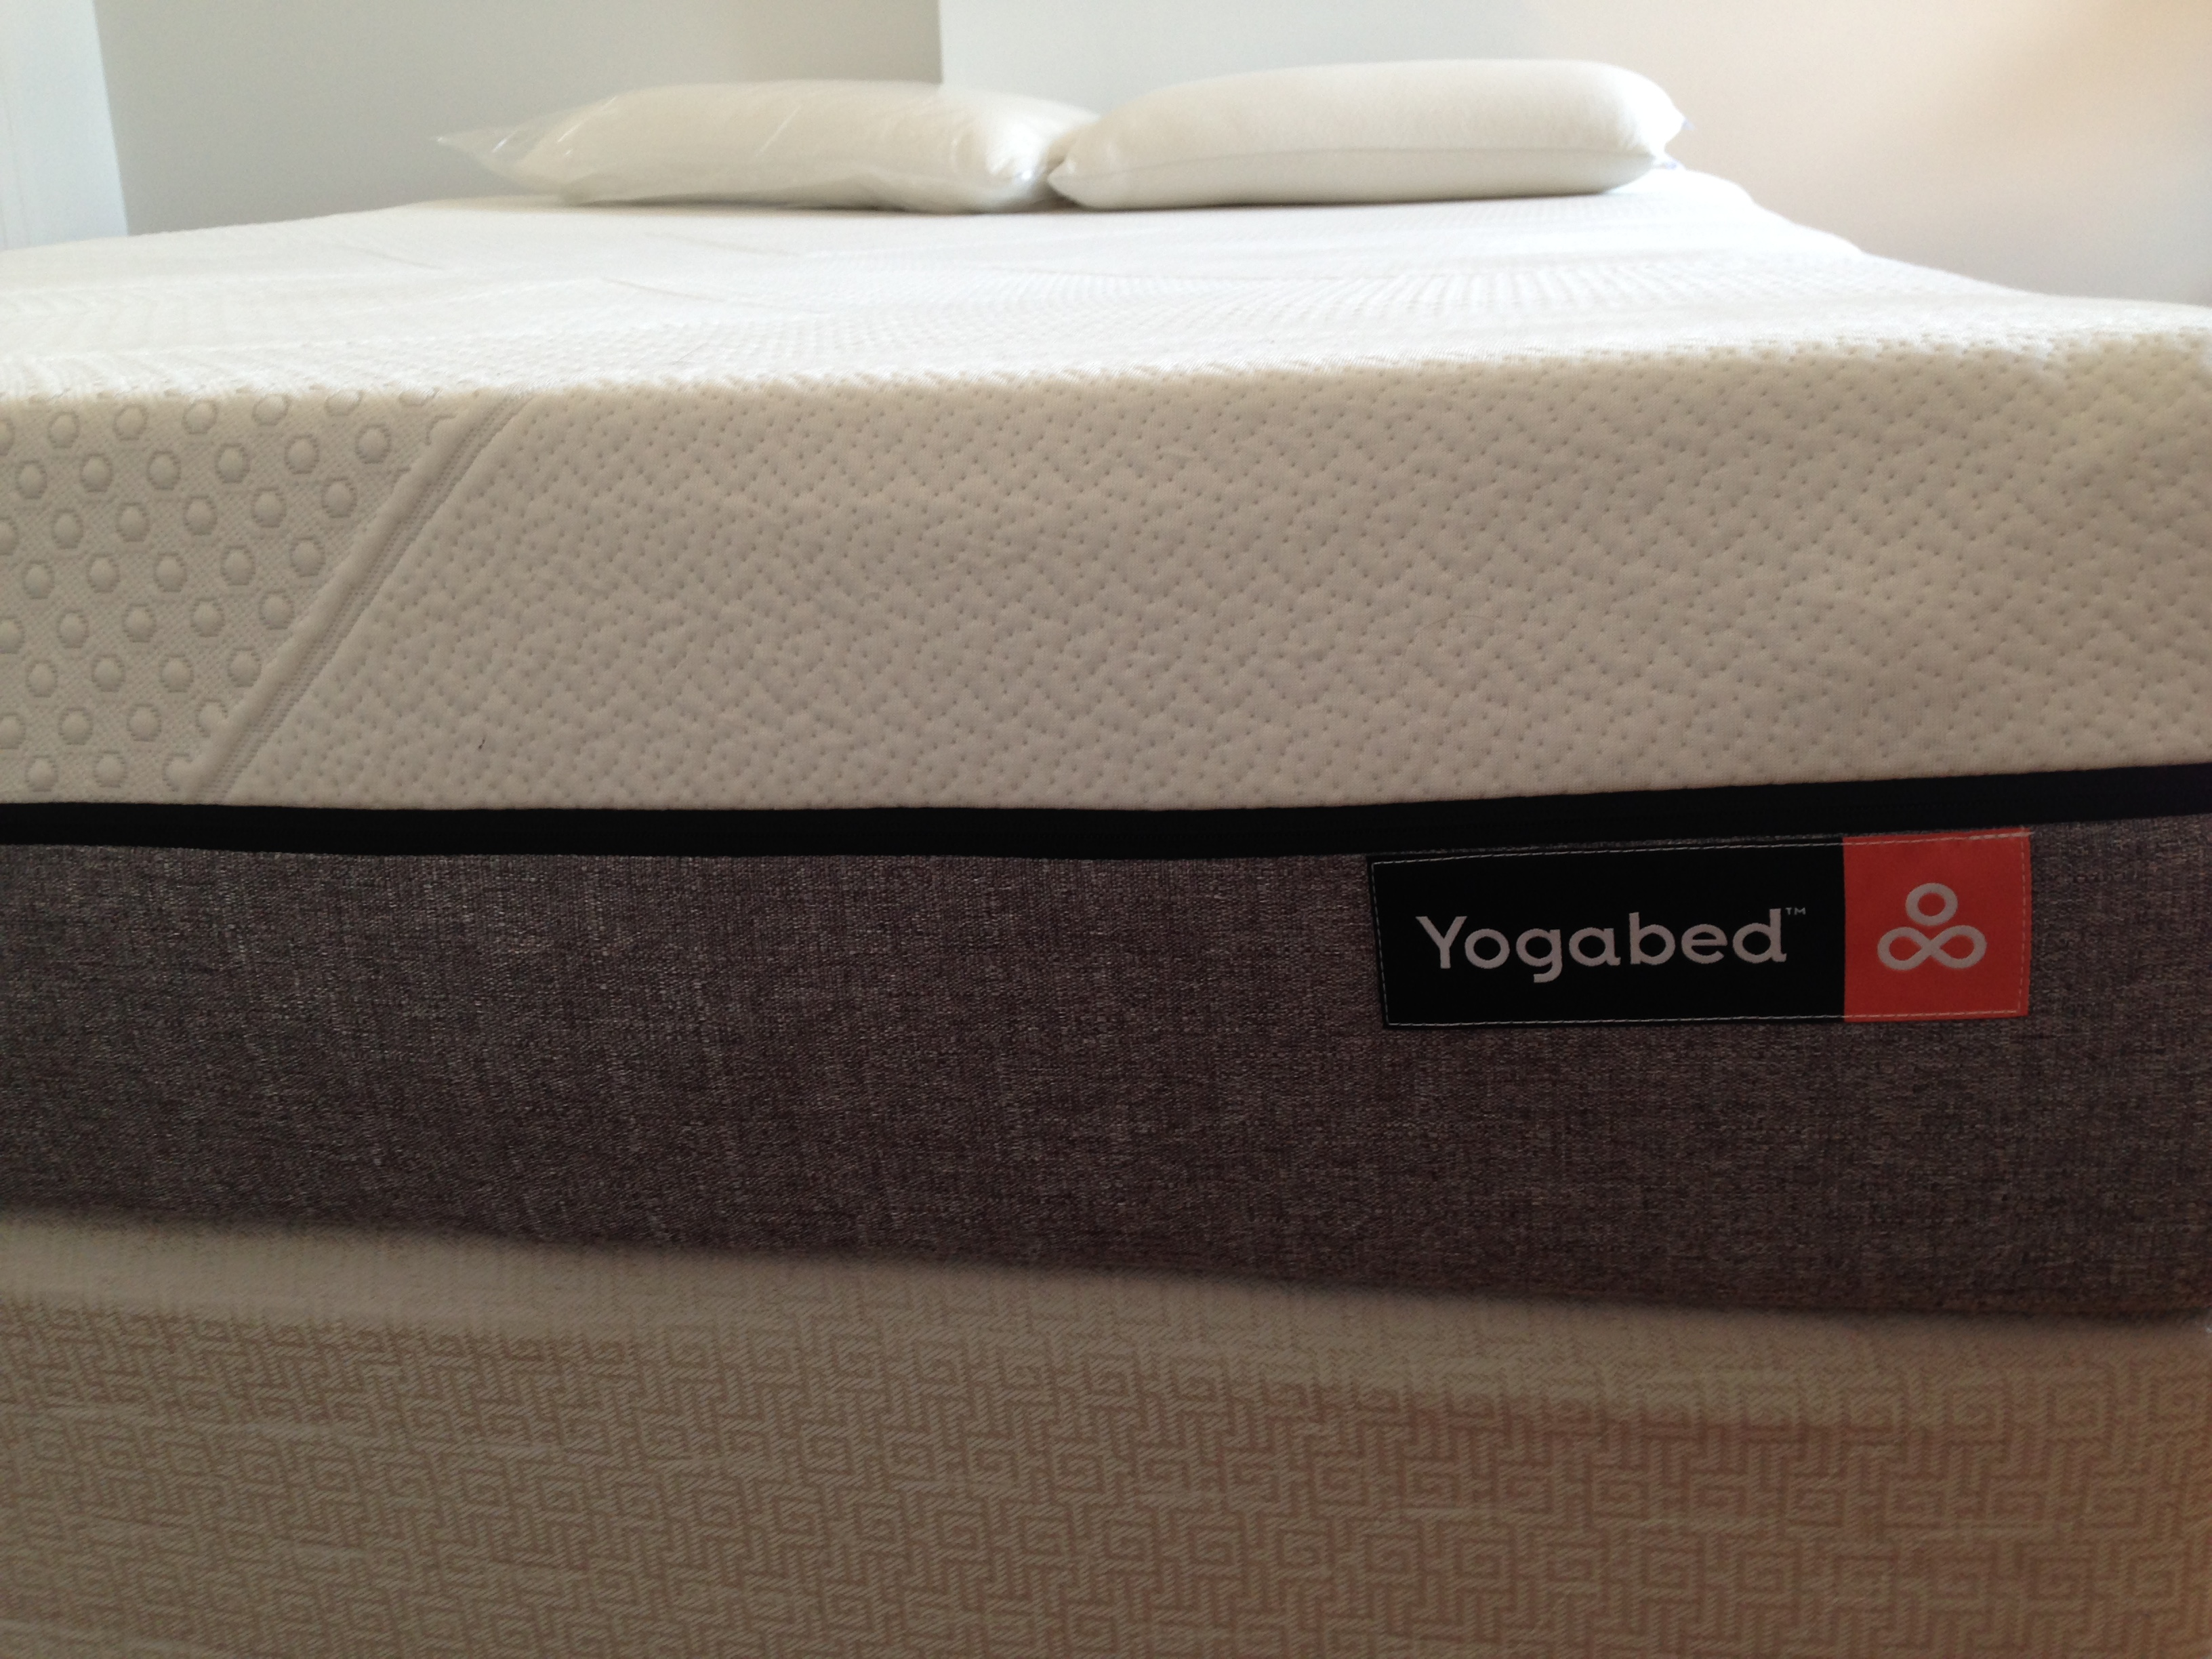 My Experience with the Yogabed Mattress